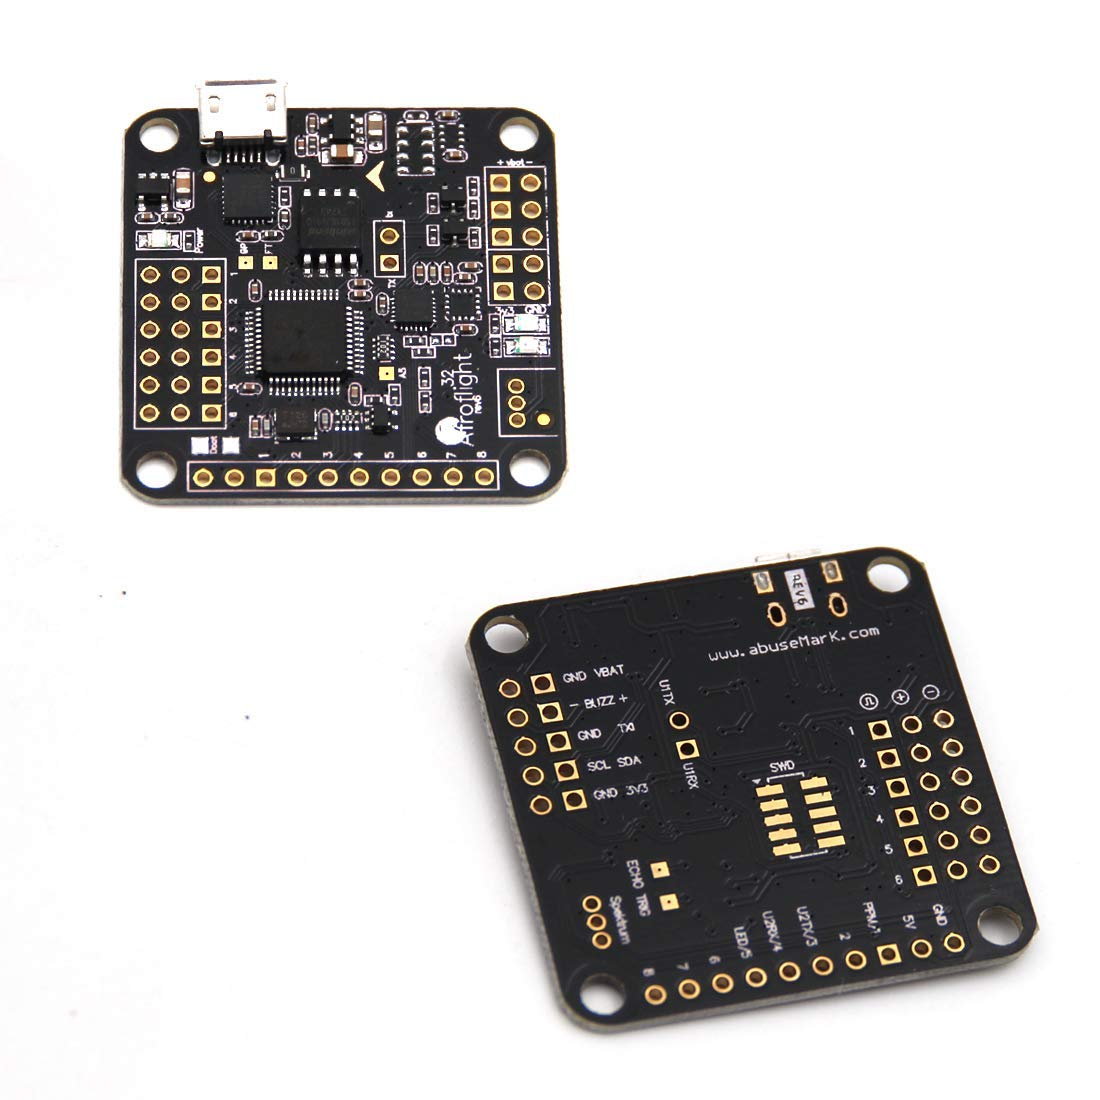 Naze 32 Full REV6 Flight Controller with Comp & Barometer - Robu.in Naze Rev A Mpu Wiring Diagram on